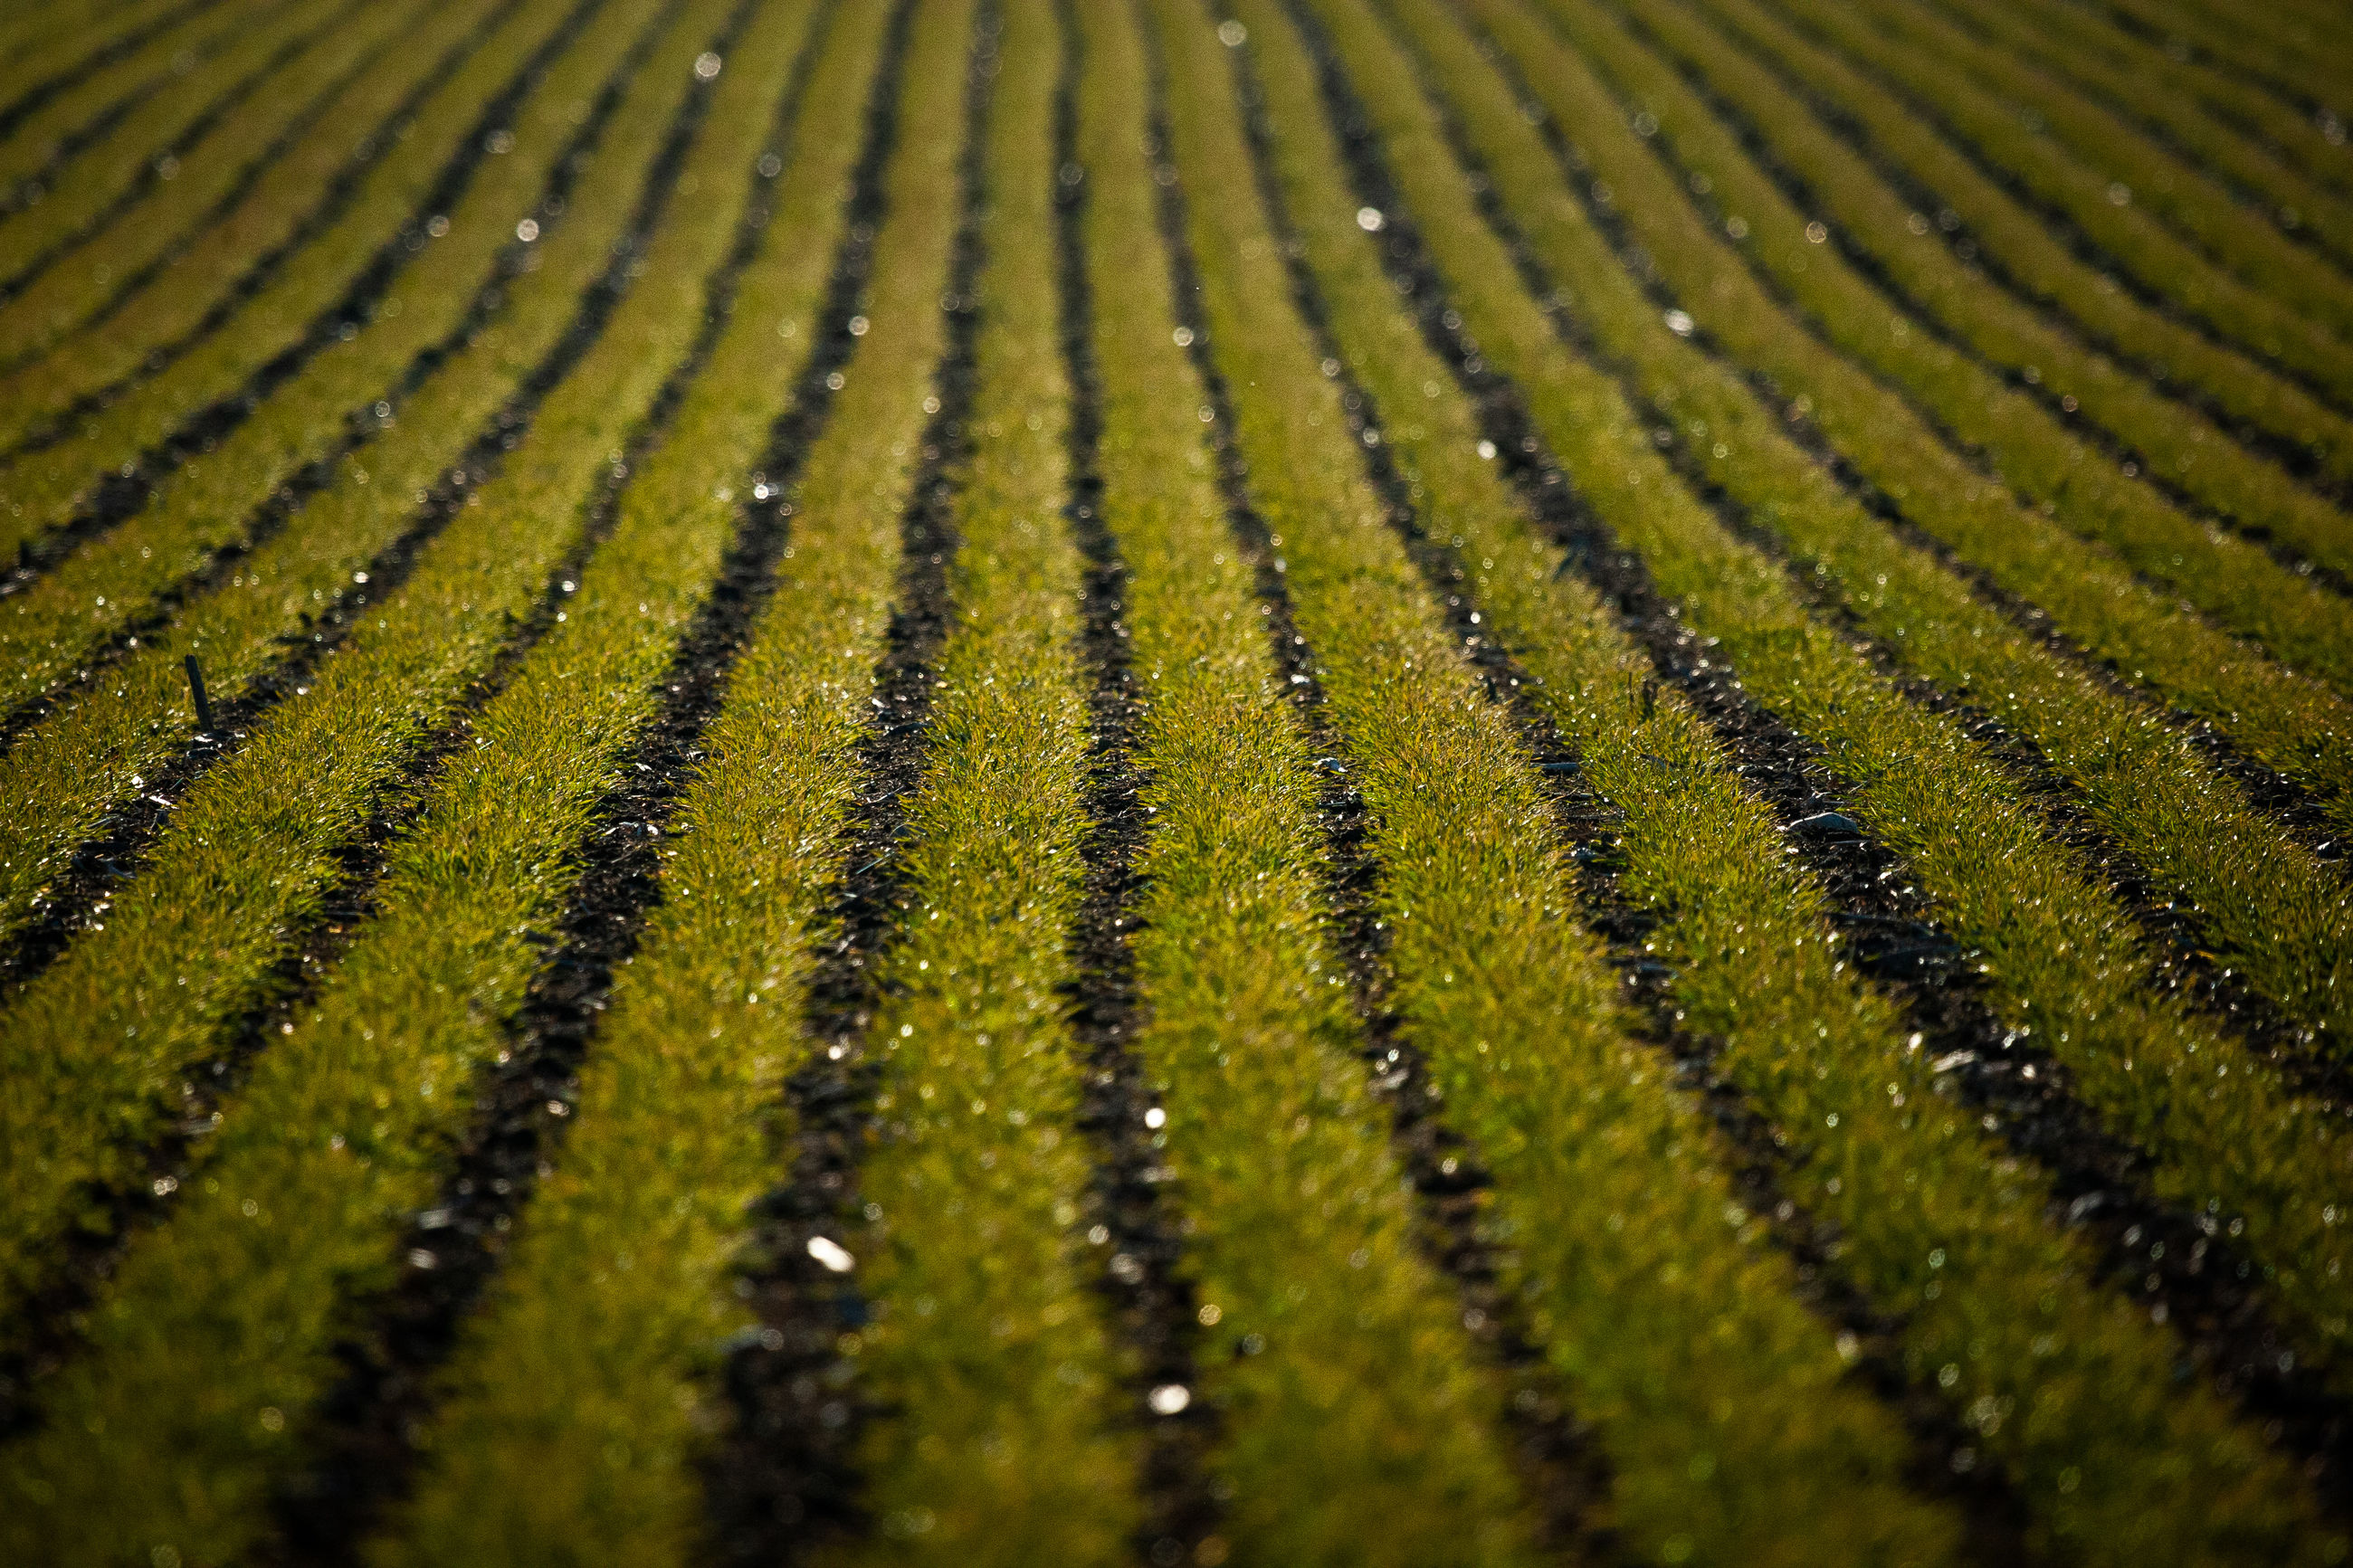 growth, pattern, green color, plant, no people, full frame, agriculture, beauty in nature, backgrounds, selective focus, day, nature, landscape, close-up, tranquility, field, land, crop, outdoors, plant part